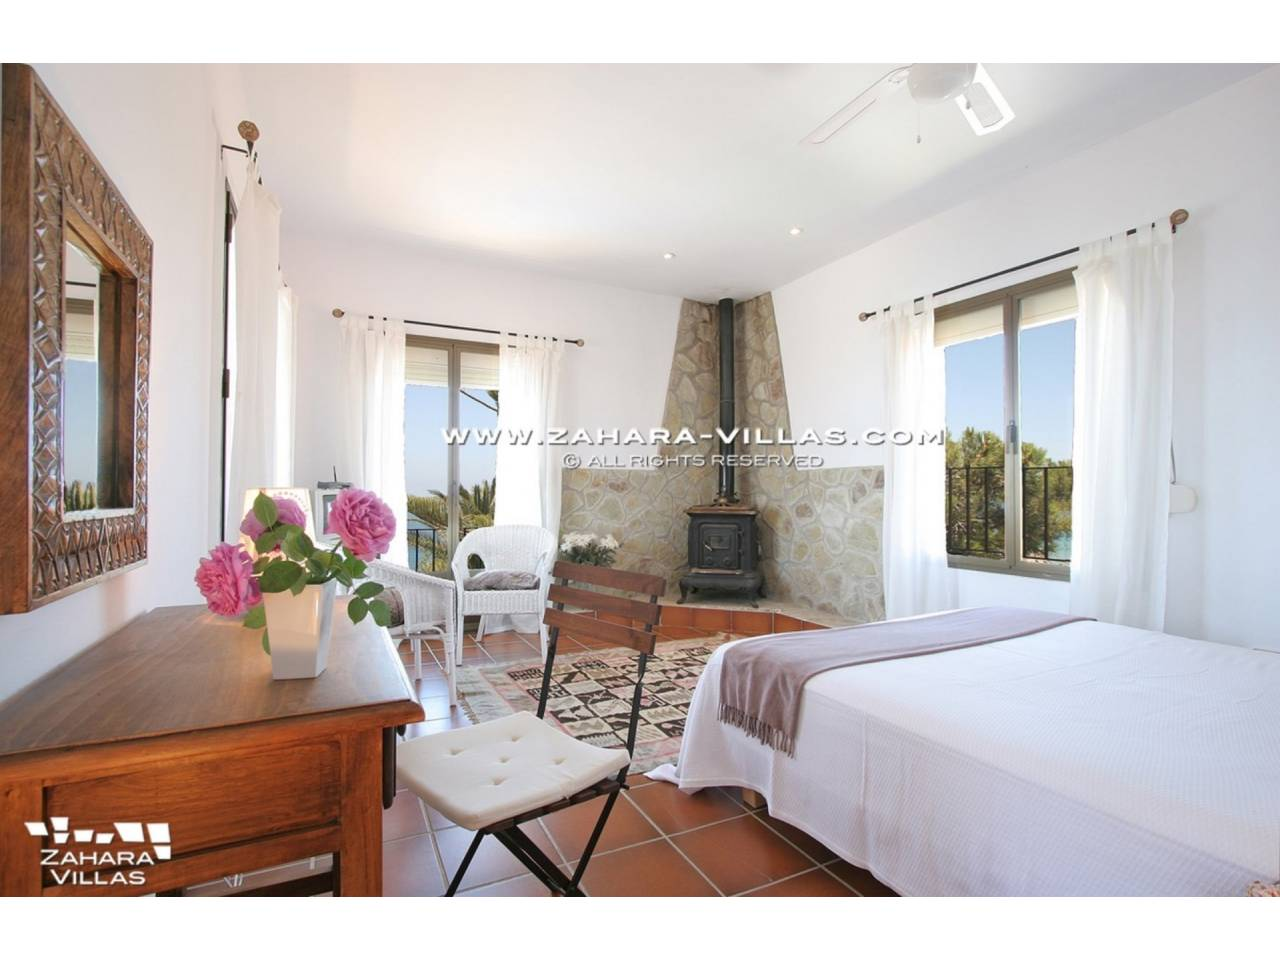 Imagen 6 de Wonderful Villa for sale in Atlanterra-Zahara de los Atunes